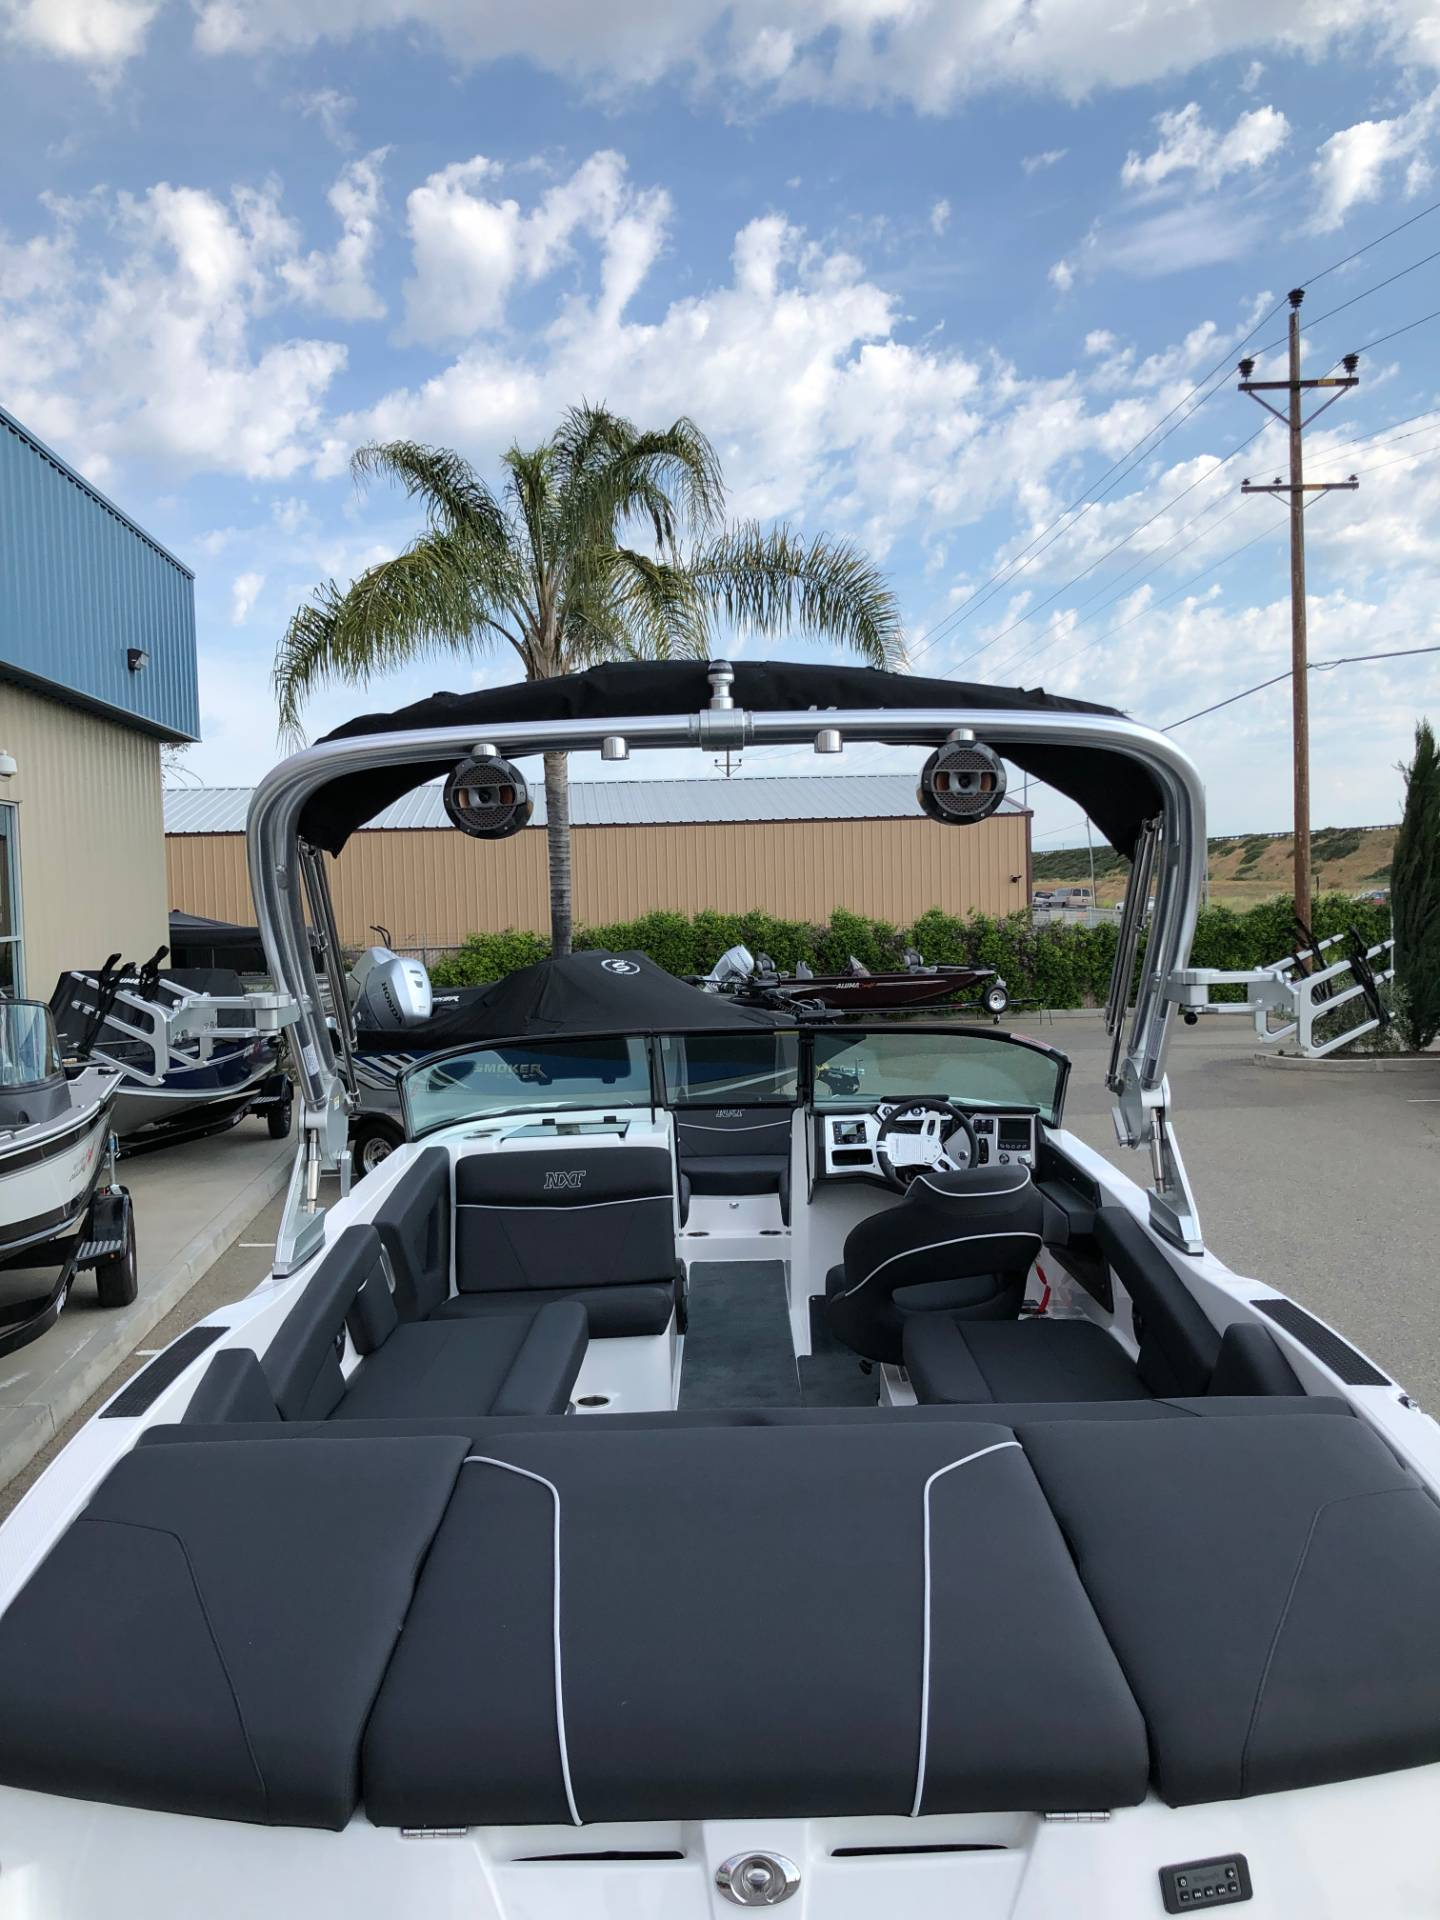 2019 Mastercraft NXT22 in Madera, California - Photo 4